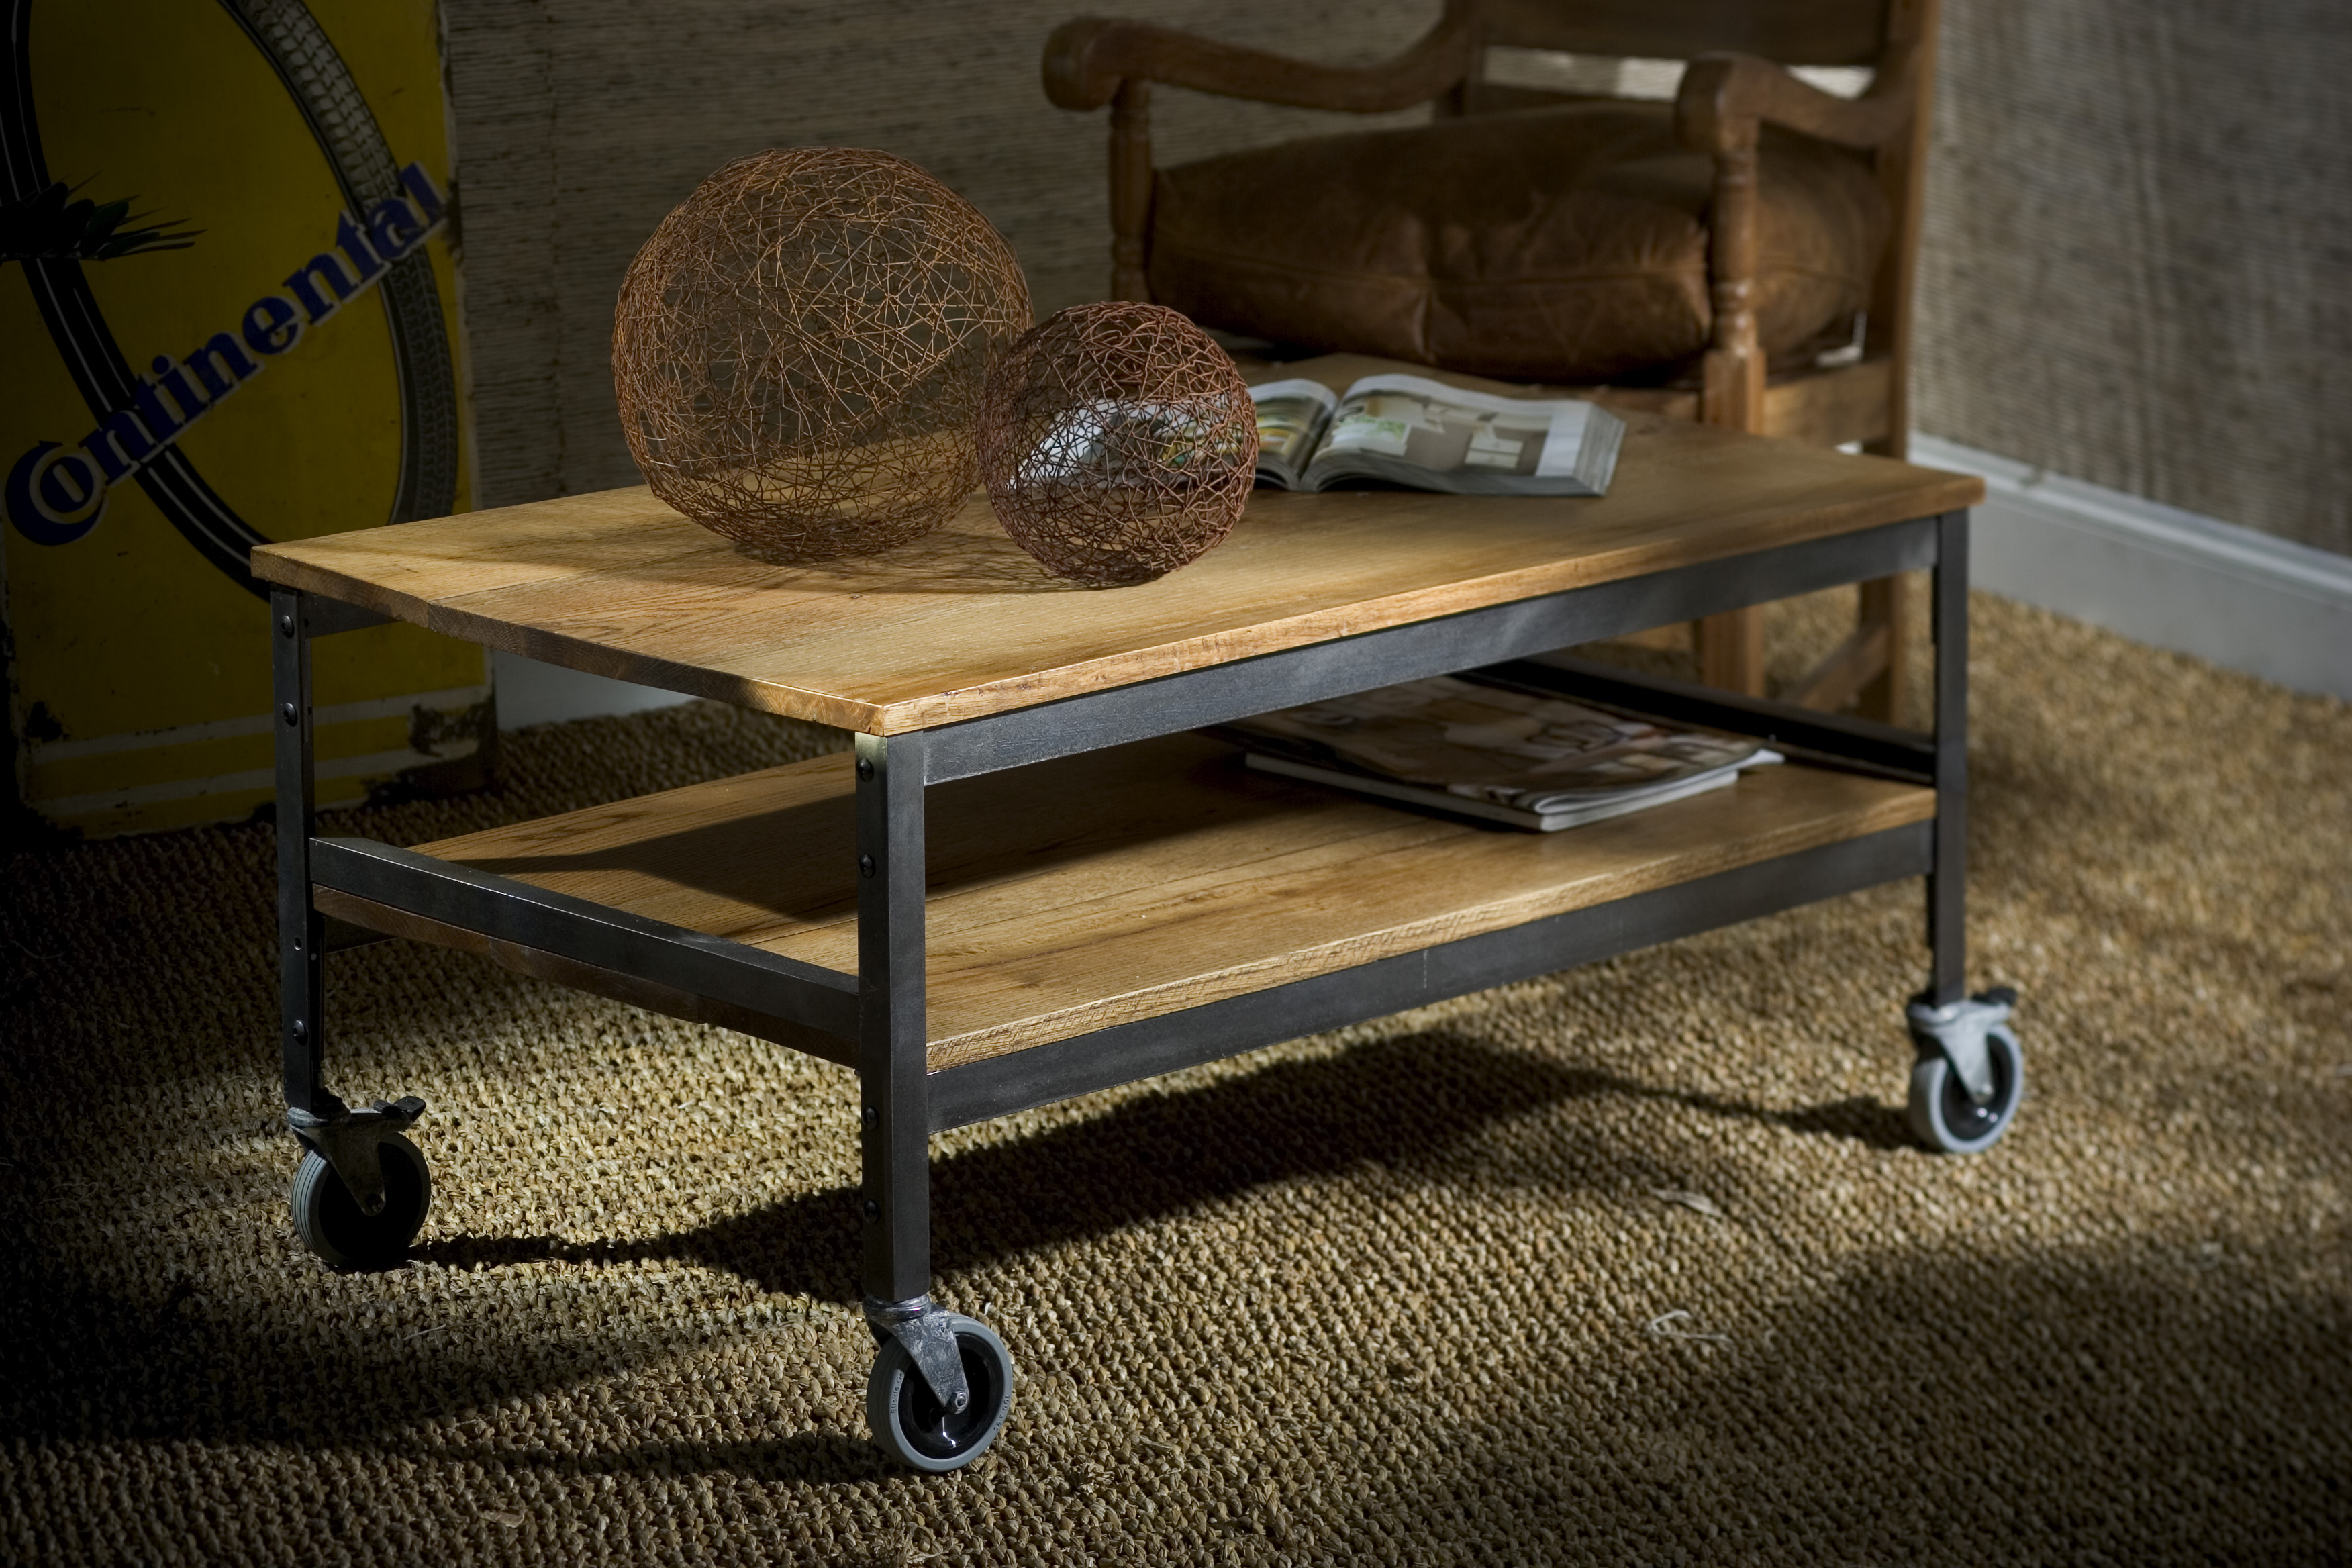 Small Coffee Table On Wheels Hipenmoedernl pertaining to measurements 3504 X 2336